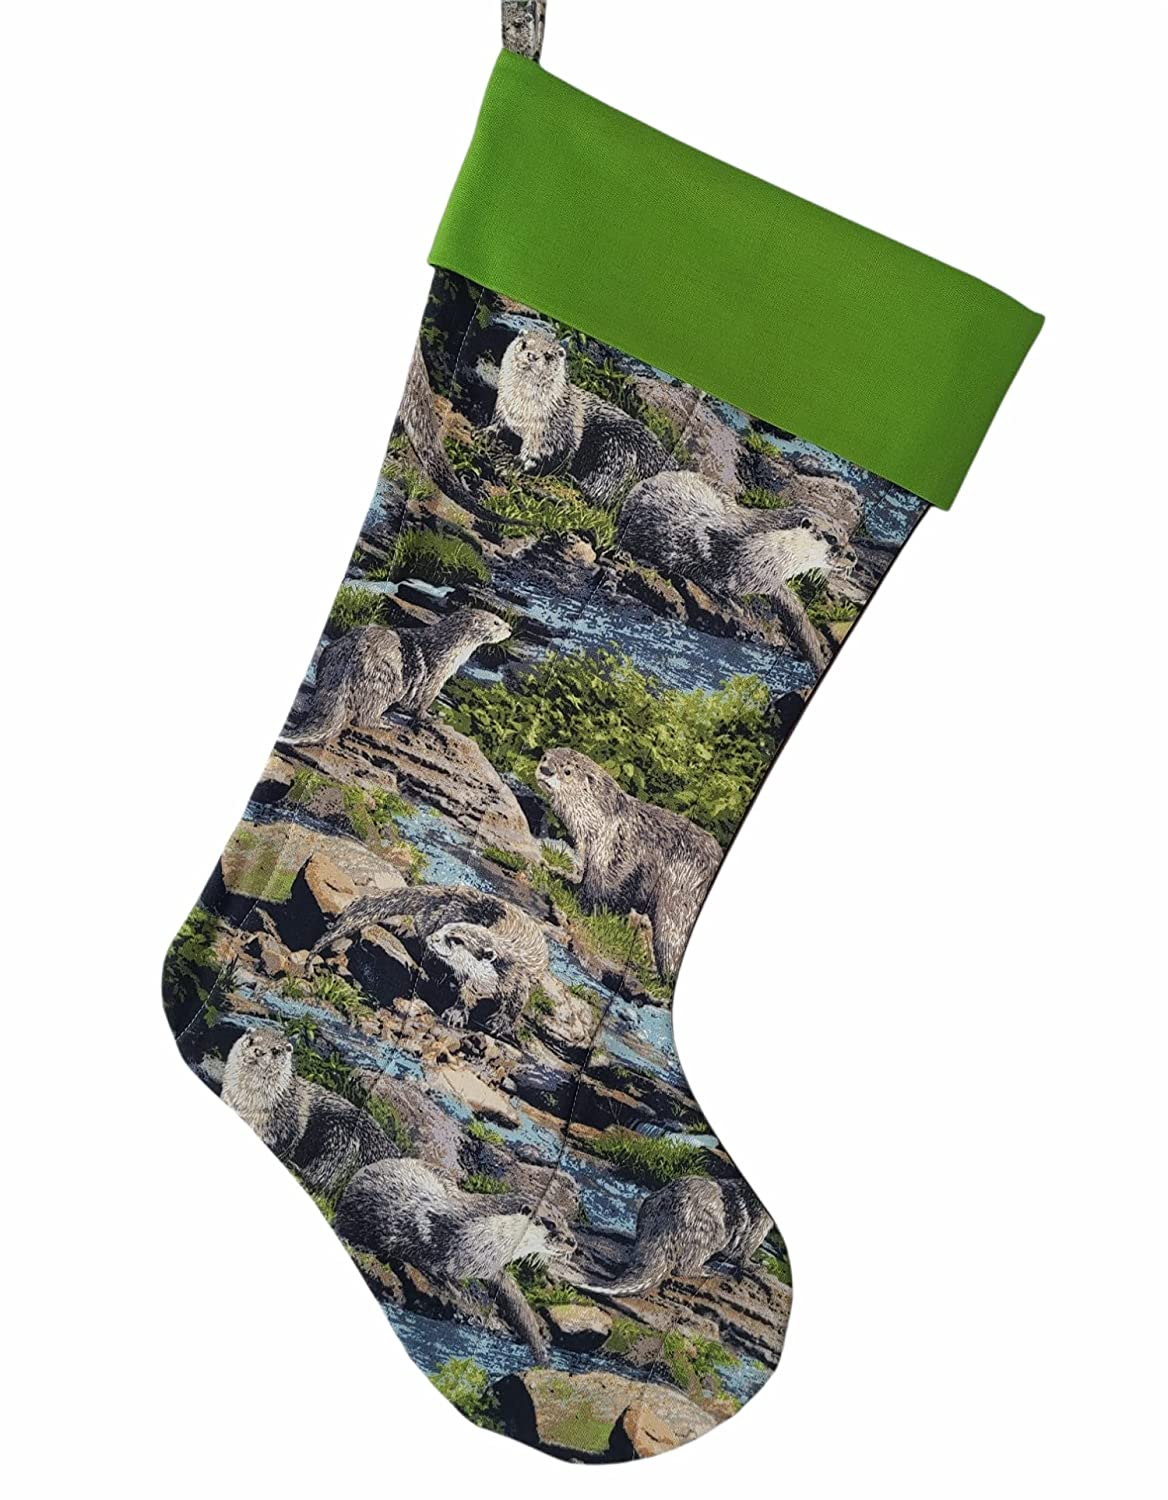 Otters Quilted New Orleans Mall Super beauty product restock quality top Stocking Christmas